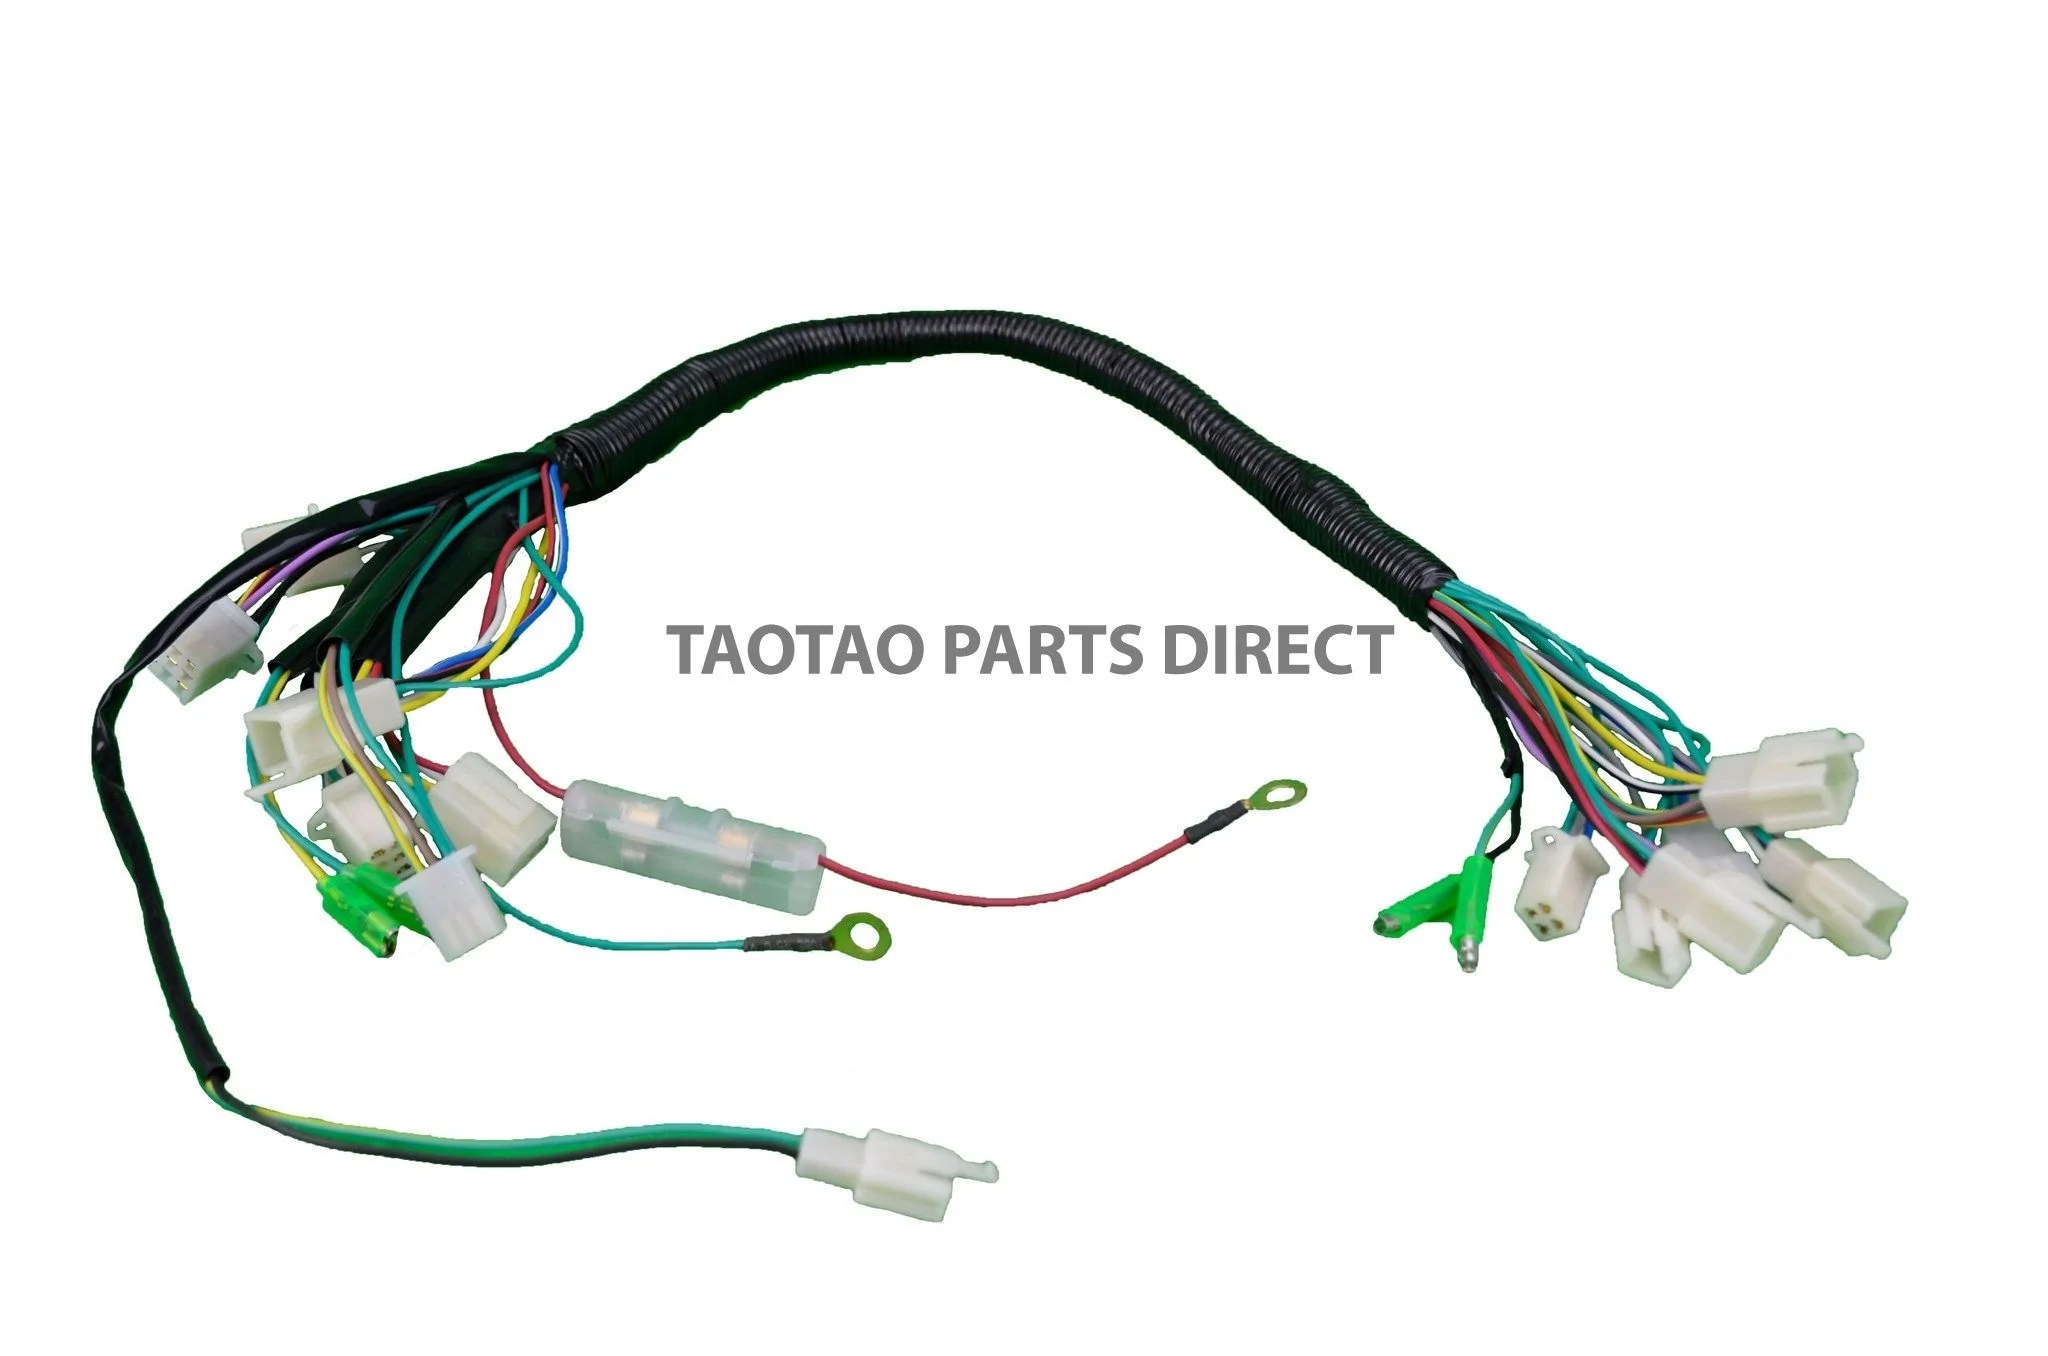 small resolution of ata110b wire harness 8 taotaopartsdirect com